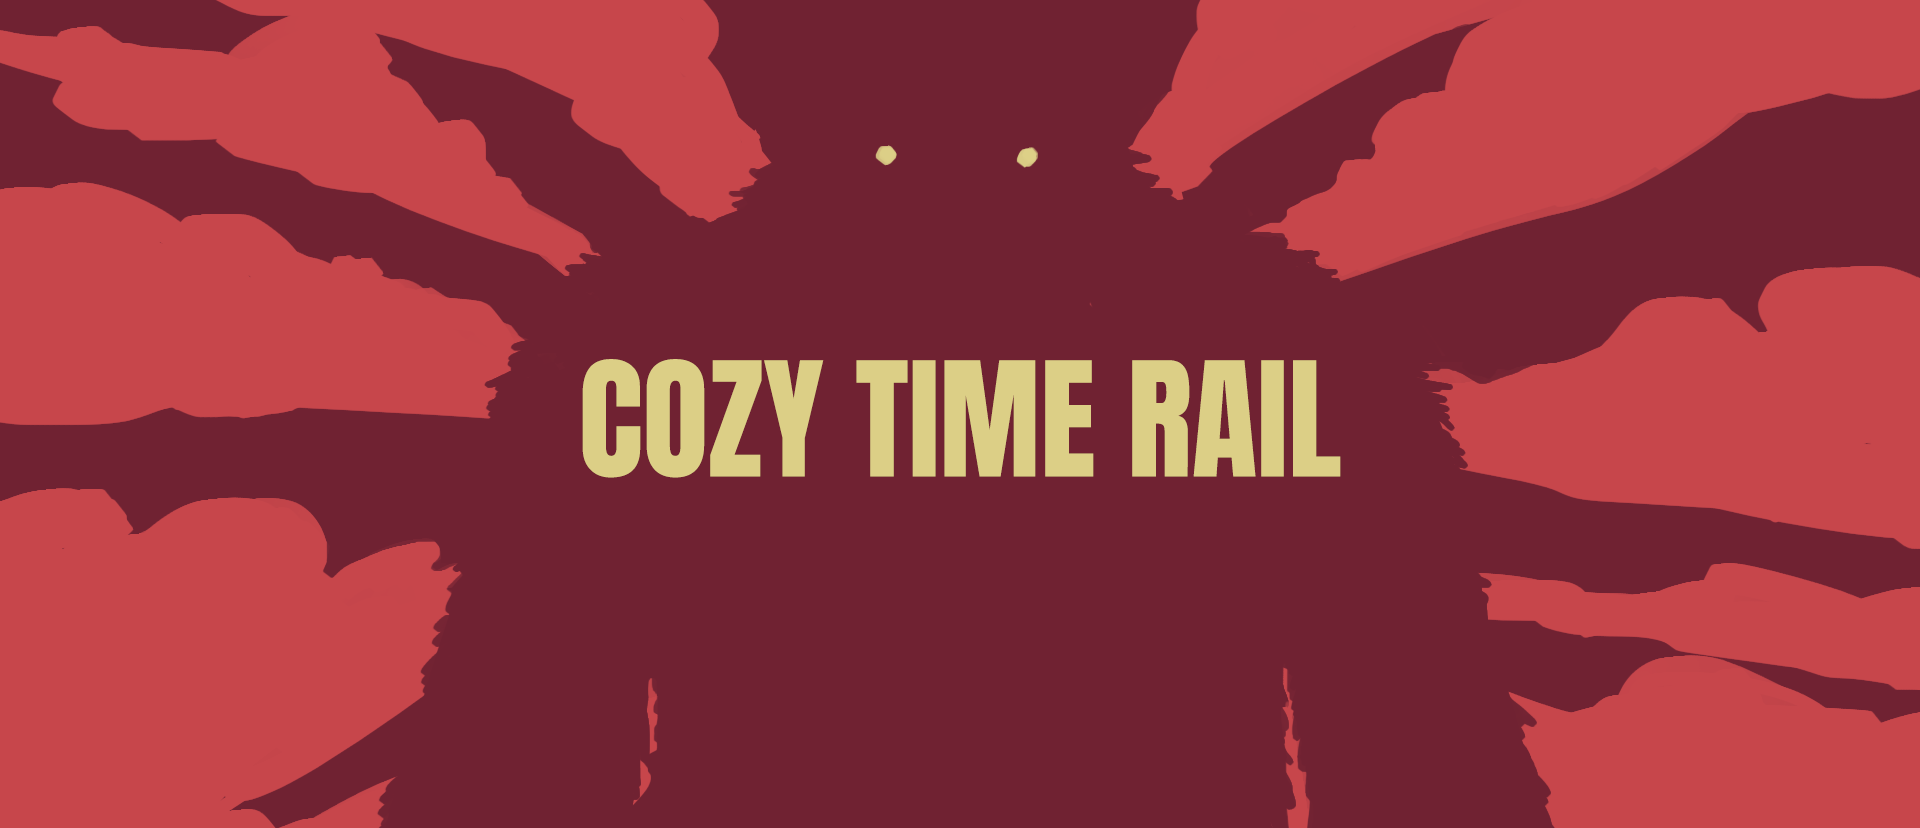 Cozy Time Rail (Jam Version)